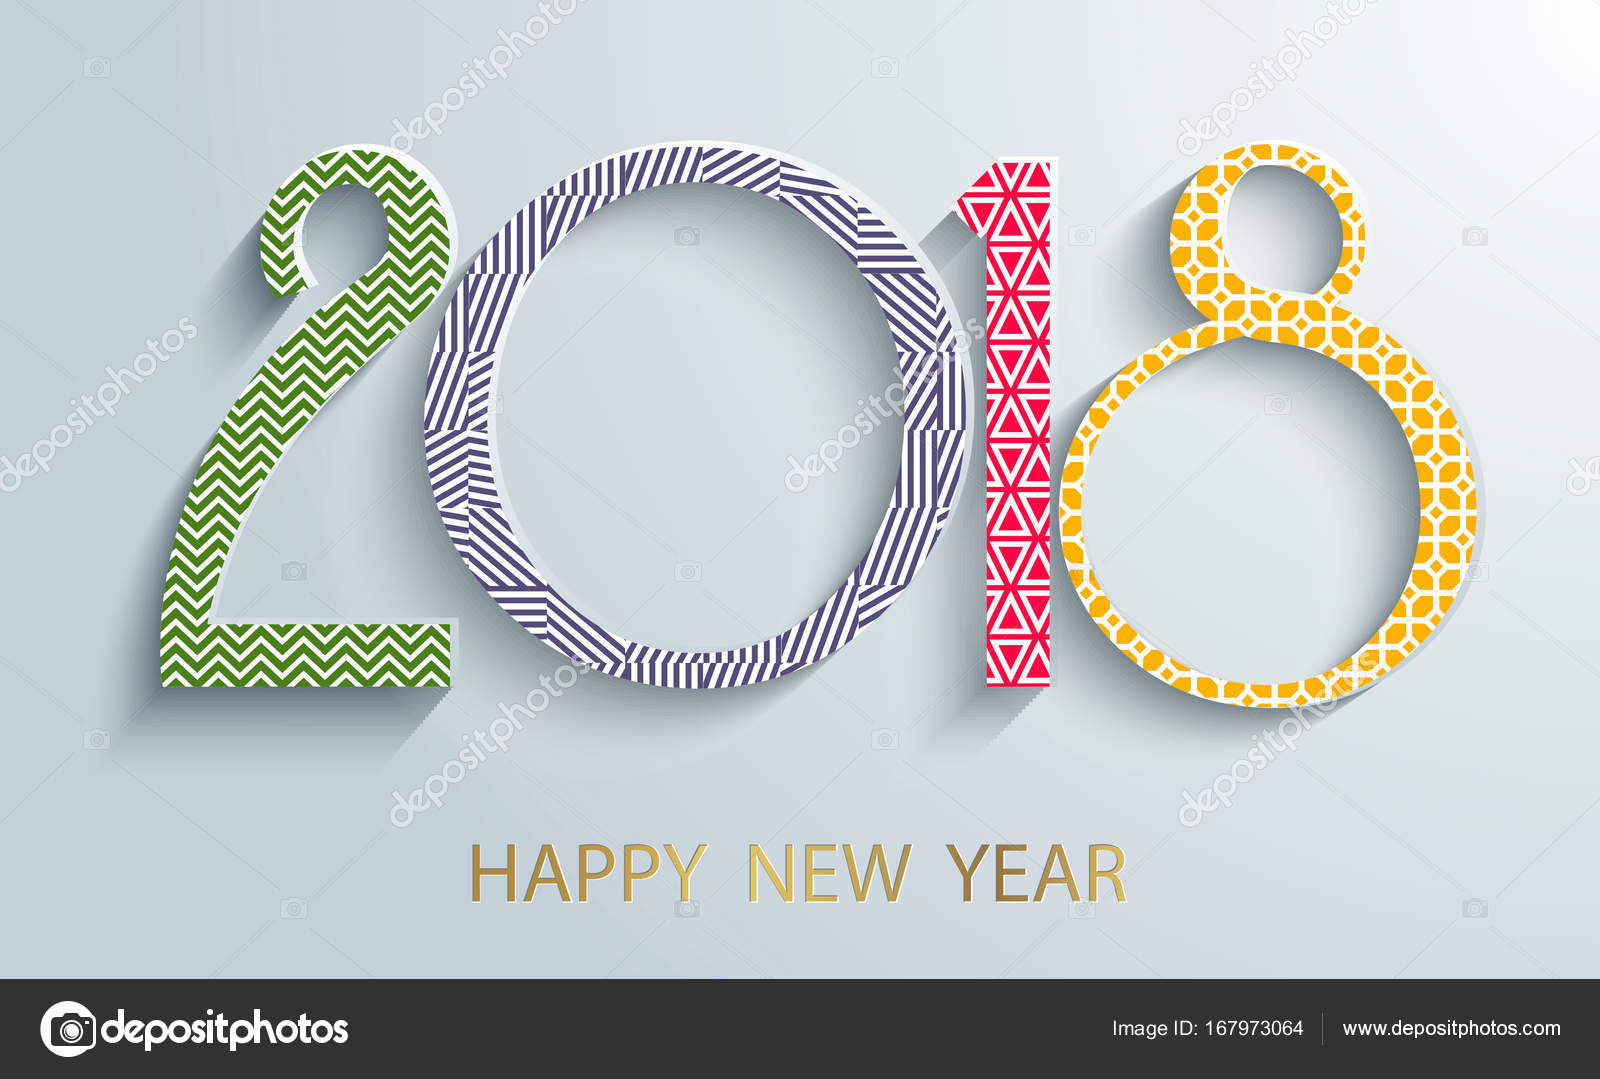 happy new year 2018 background paper white design with shadows decorative background for christmas